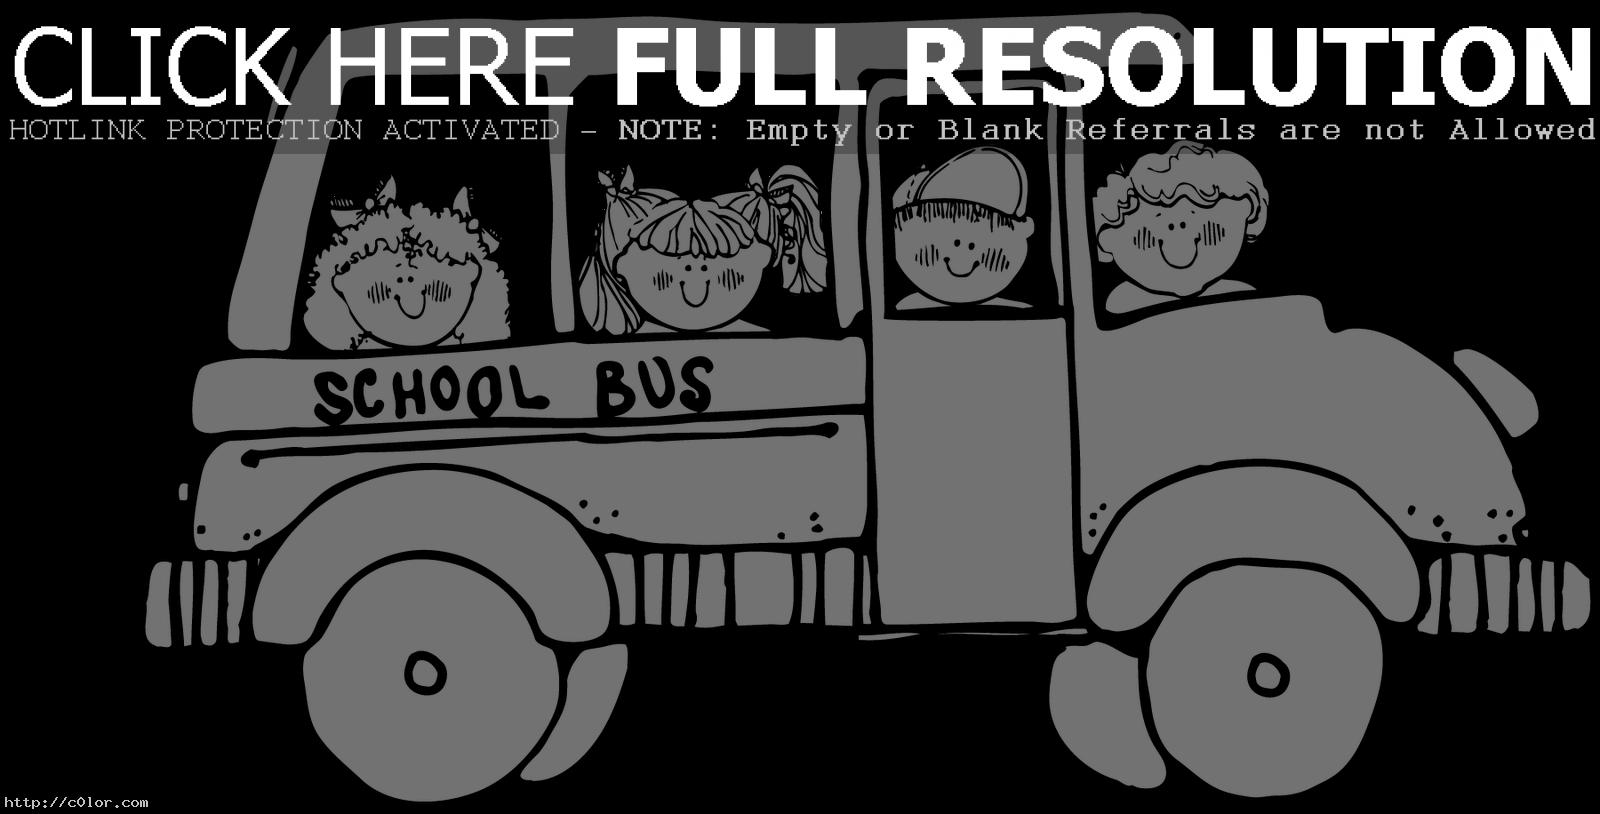 worksheet Magic School Bus Video Worksheets workbooks magic school bus video worksheets free printable coloring page clipart panda images worksheets